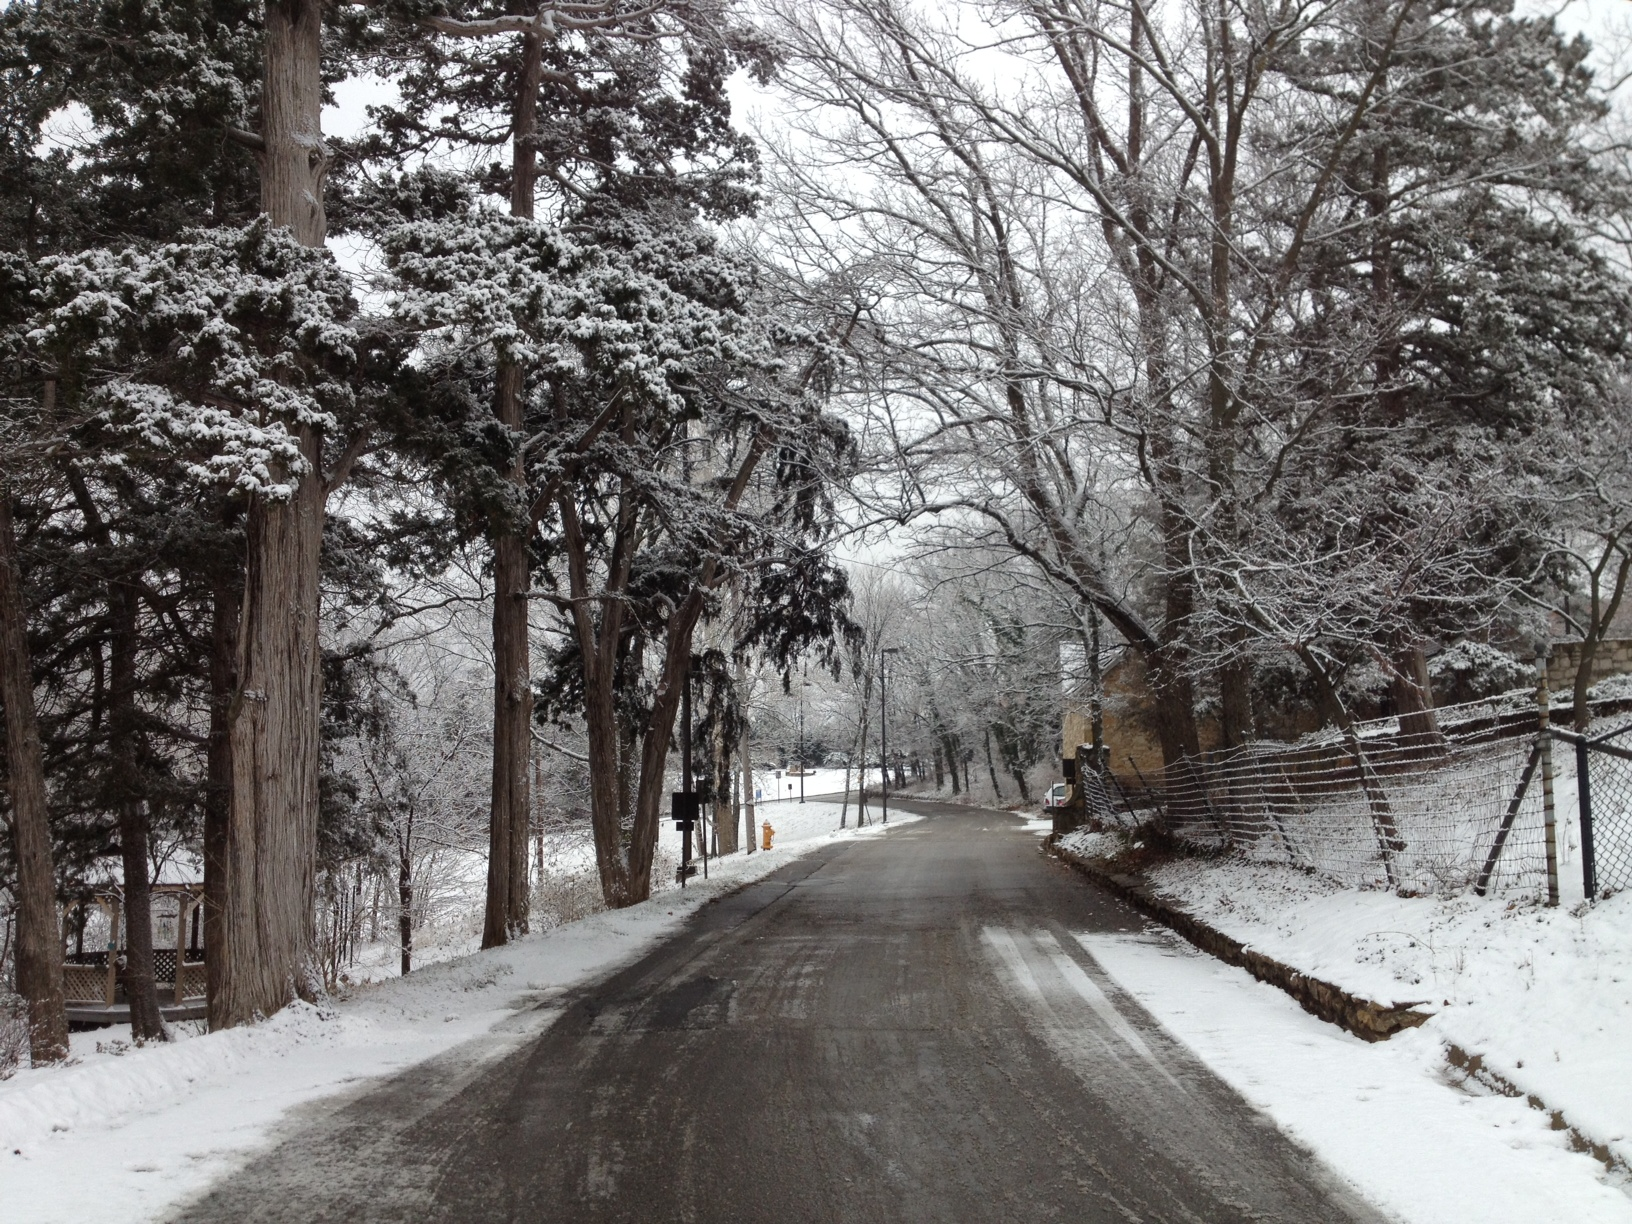 File photo of a winter scene; the road that leads to Kansas Public Radio. (Photo by J. Schafer)